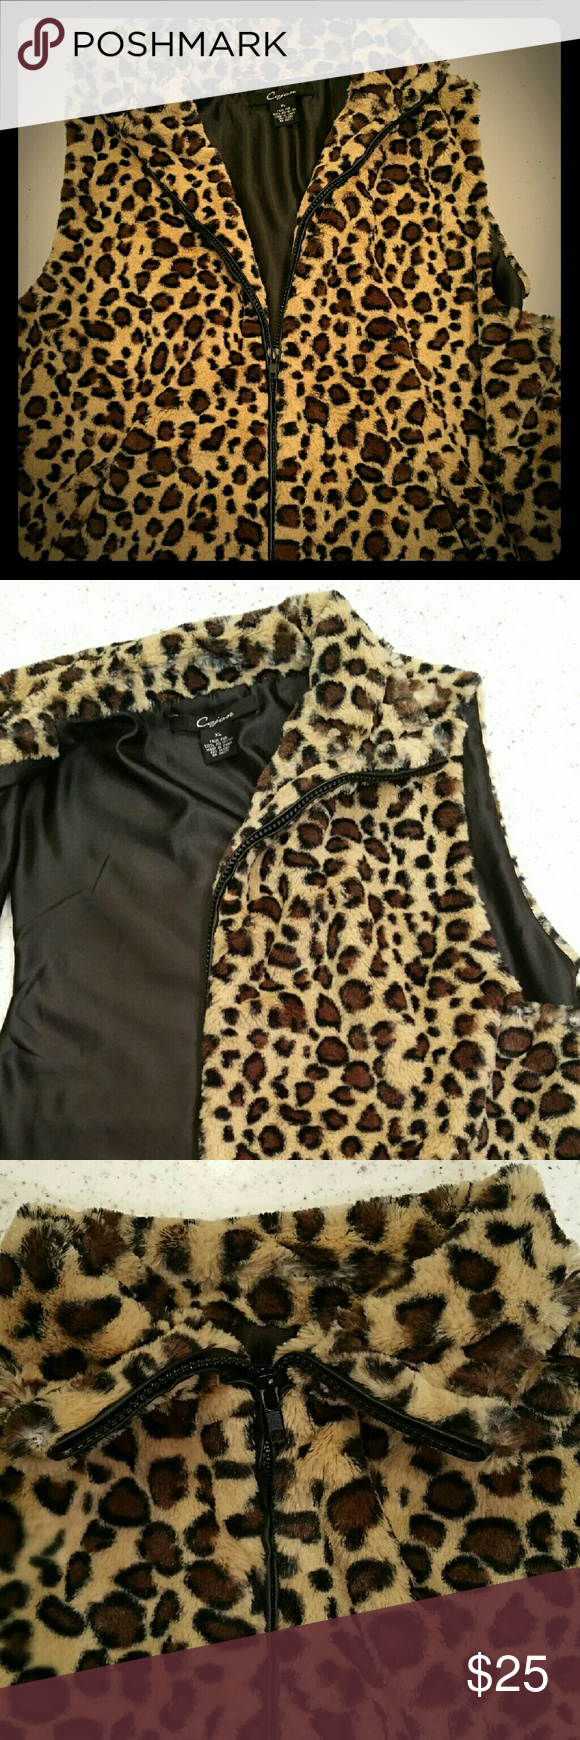 Faux Fur Leopard Vest Sleeveless women's leopard print vest, good condition, zip front, side pockets, fully lined,  worn a few times. Jackets & Coats Vests